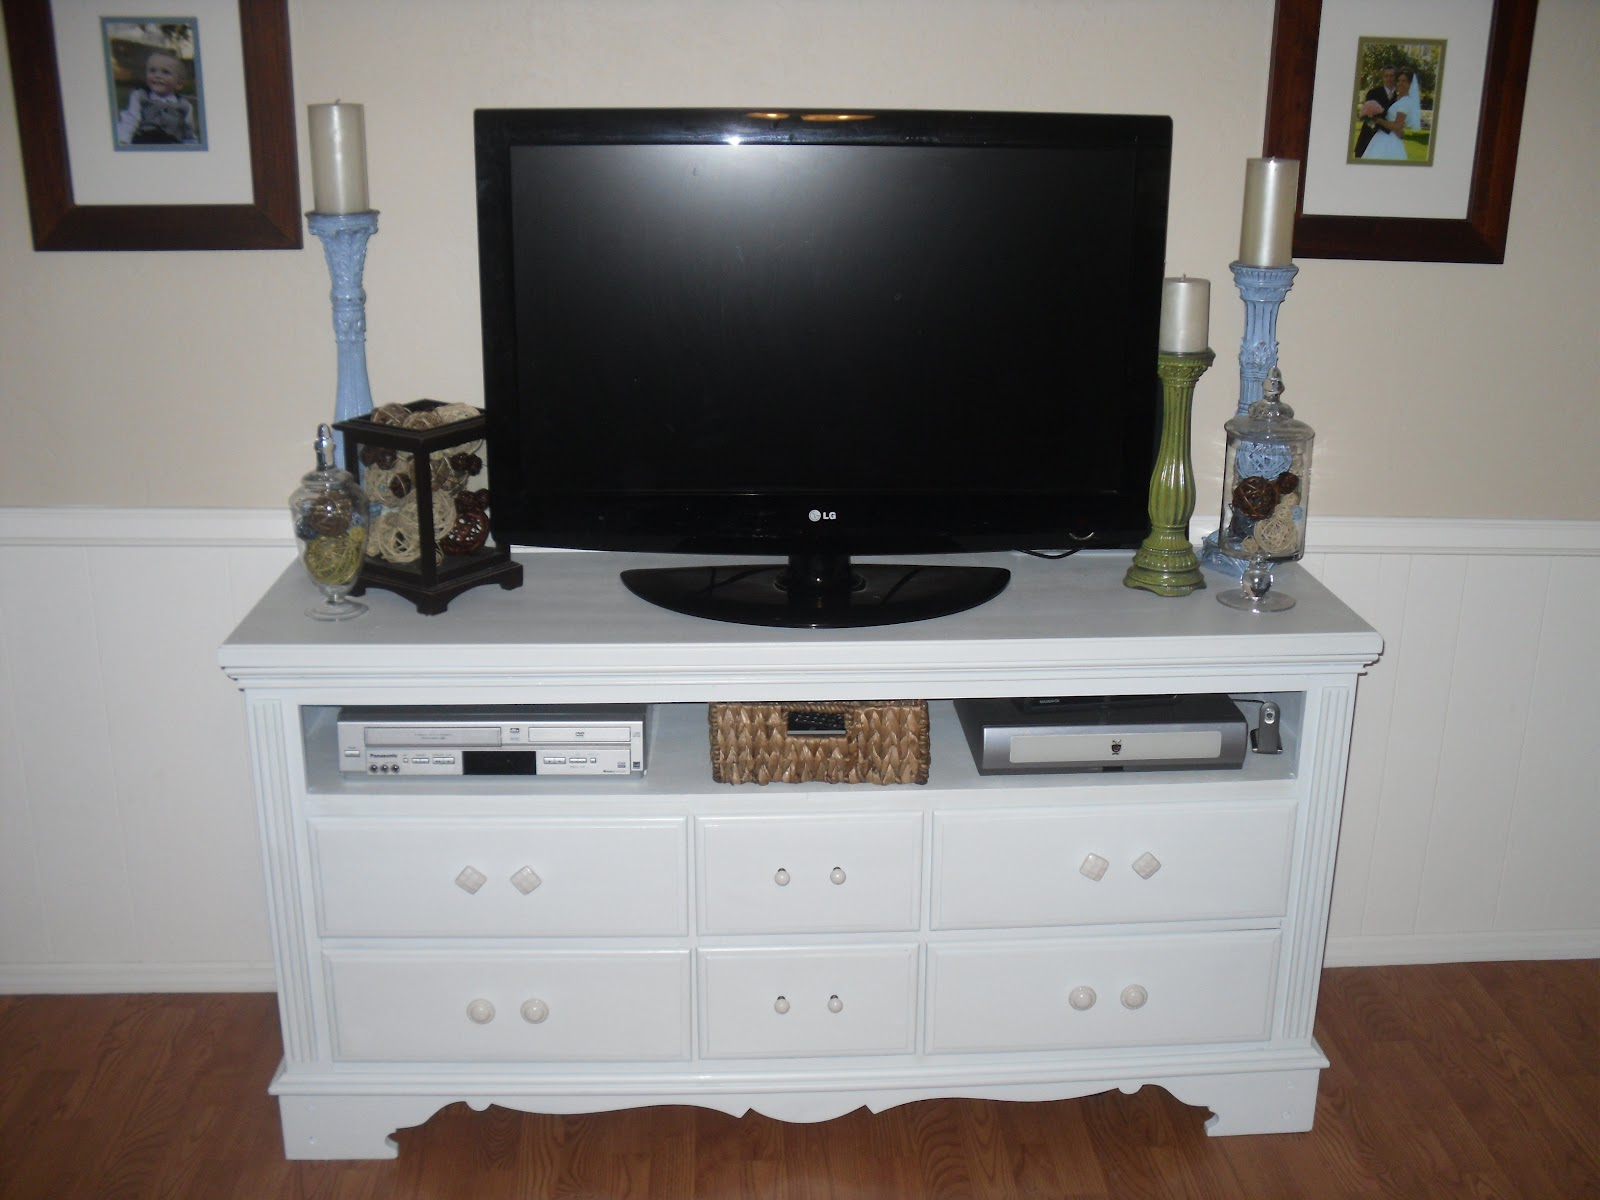 craftify it dresser to tv stand tutorial. Black Bedroom Furniture Sets. Home Design Ideas